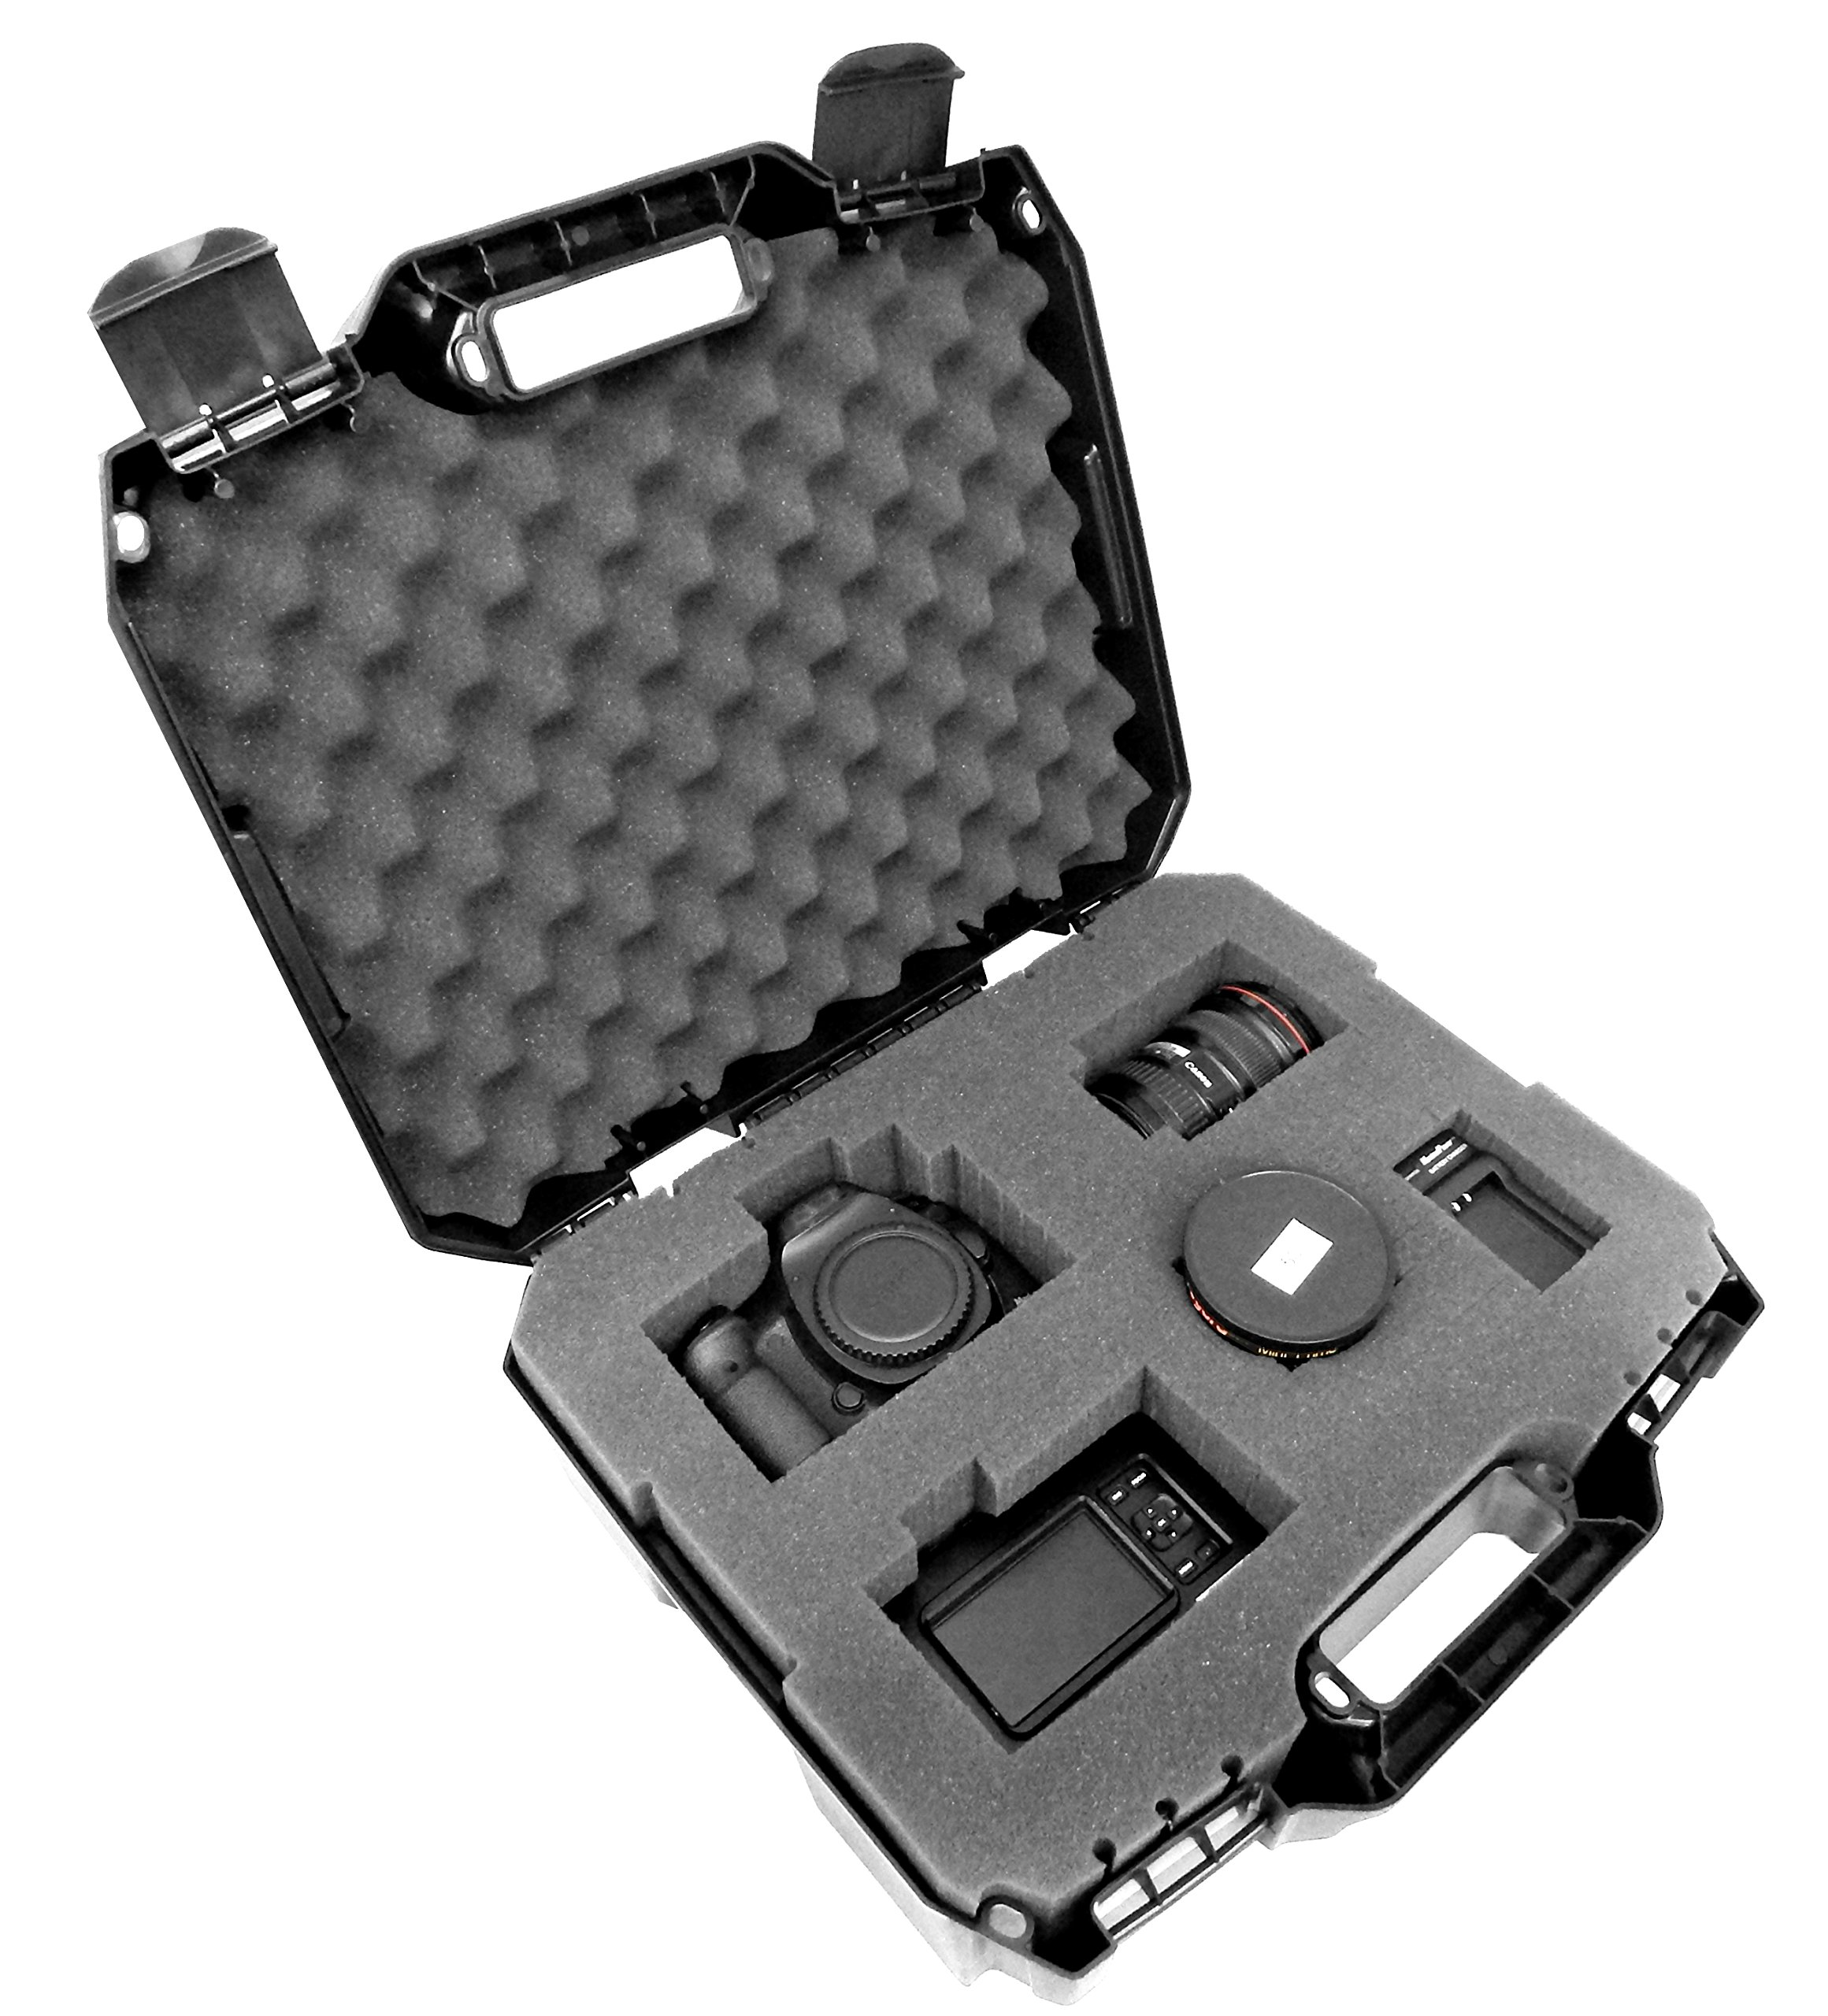 TOUGH-XL Hard-Body Travel and Storage Case Camera , Gear , Equipment and Lenses - Protects Nikon Digital SLR dSLR D3300 / D3200 / D750 / D7100 / D810 / D3100 / D5500 / D7200 / D7000 and more by CASEMATIX